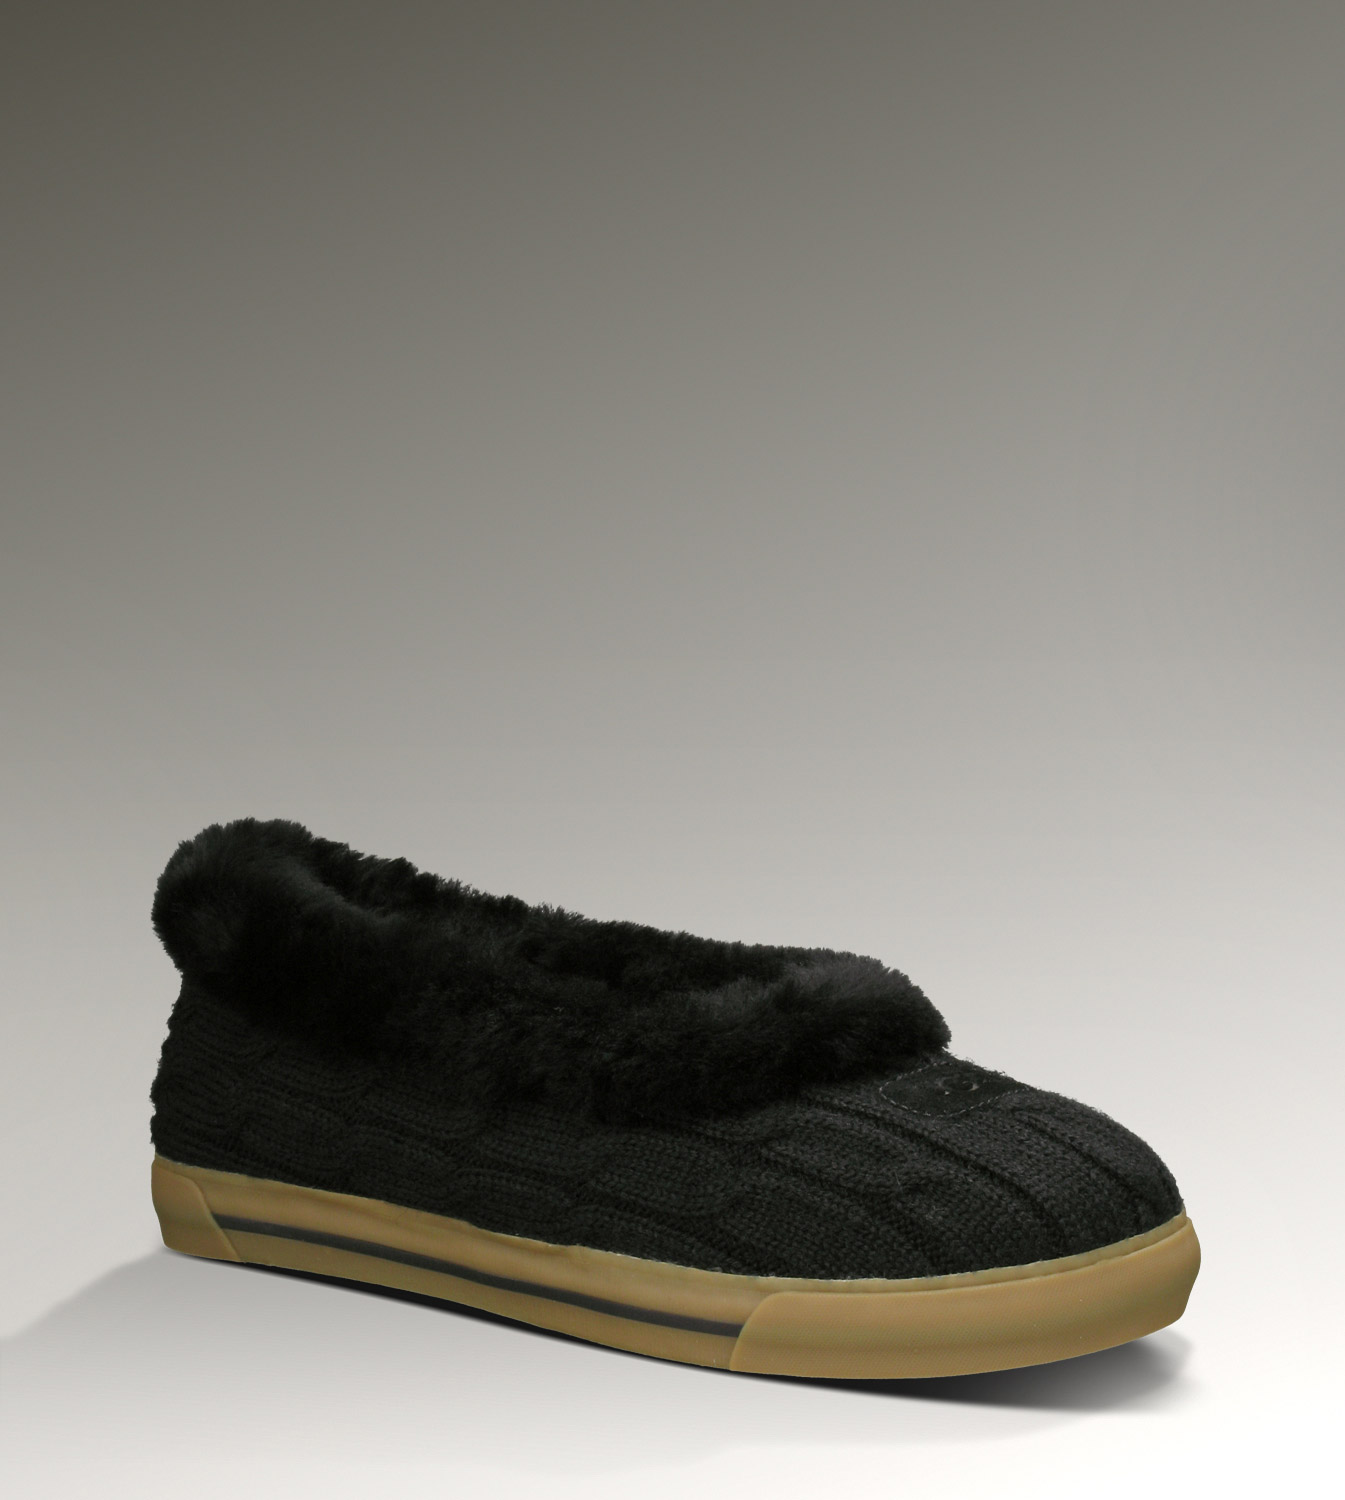 UGG Rylan Knit 3314 Black Slippers